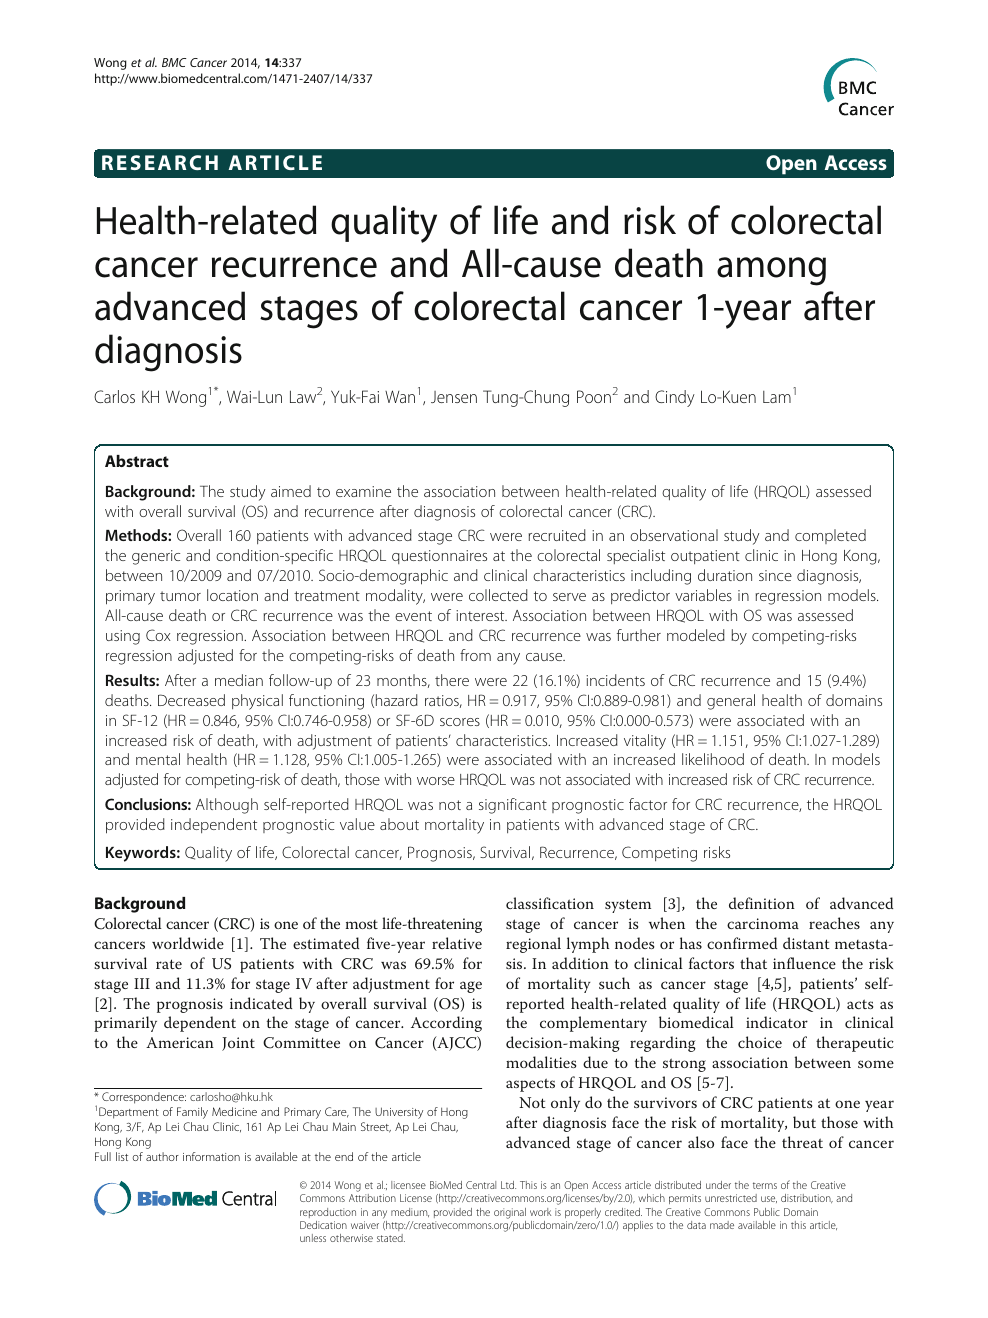 Health Related Quality Of Life And Risk Of Colorectal Cancer Recurrence And All Cause Death Among Advanced Stages Of Colorectal Cancer 1 Year After Diagnosis Topic Of Research Paper In Health Sciences Download Scholarly